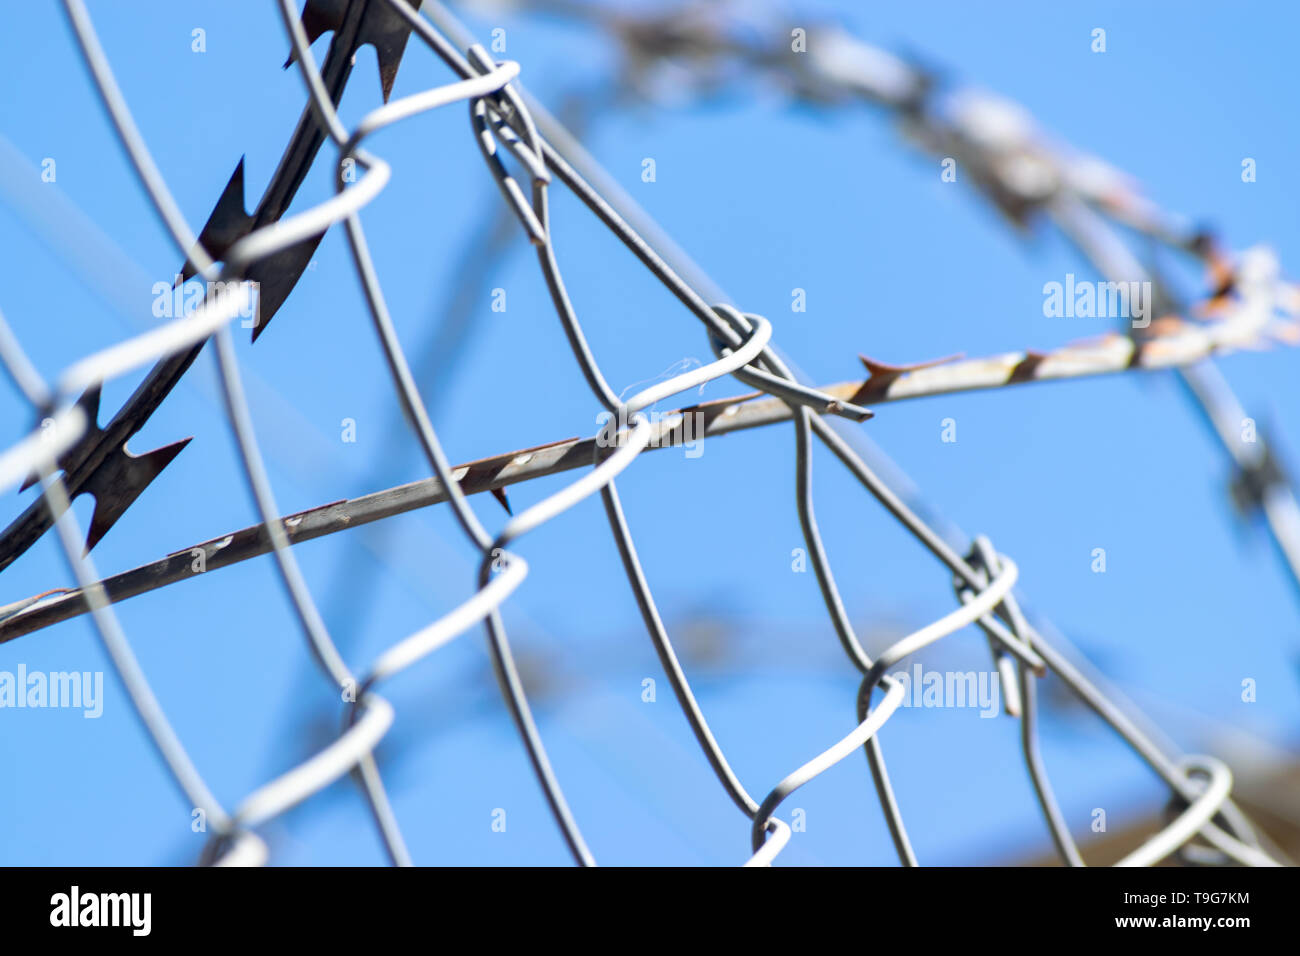 Details of barb wires in a sunny day - Stock Image